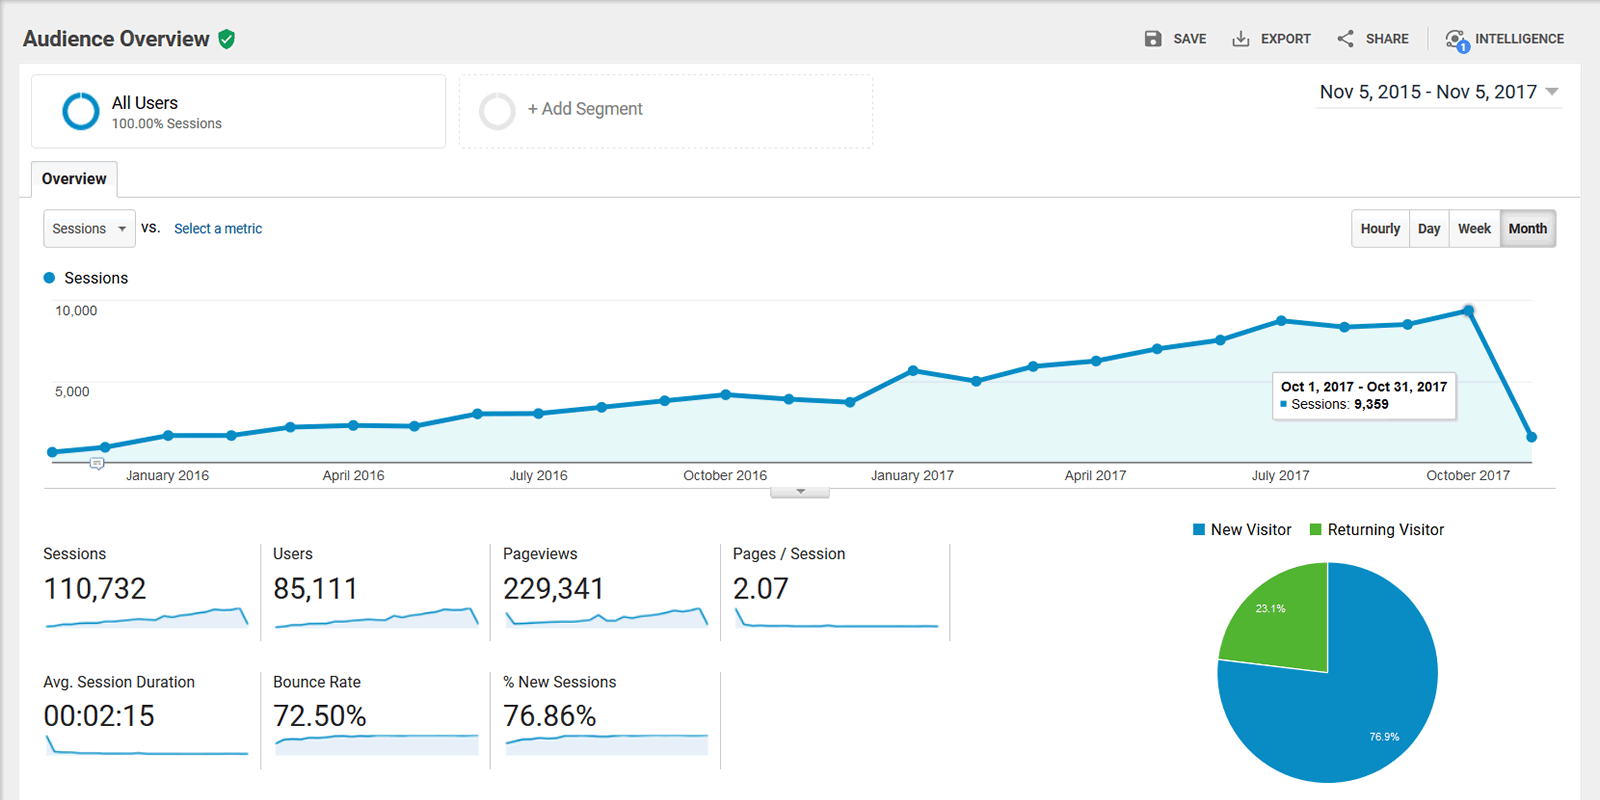 Google Analytics - Audience Overview - 2015-11-05 through 2017-11-05